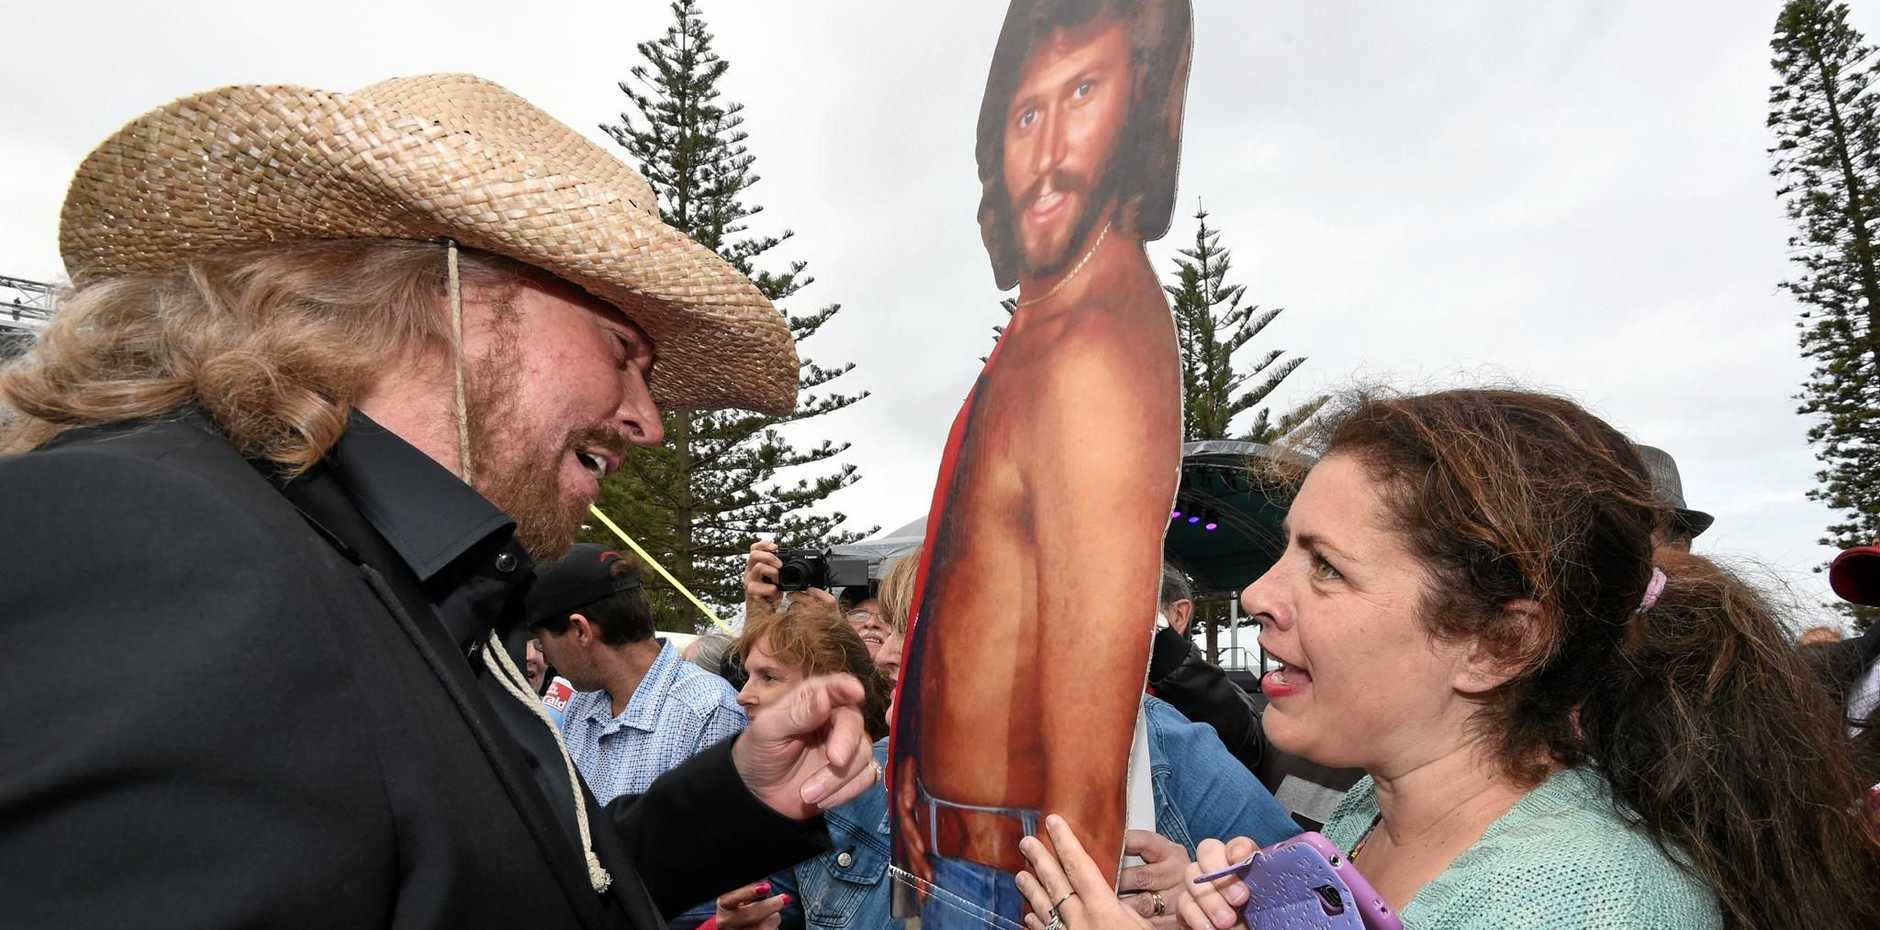 FANS: Barry Gibb talks to a fan next to a cardboard cutout of his young self.